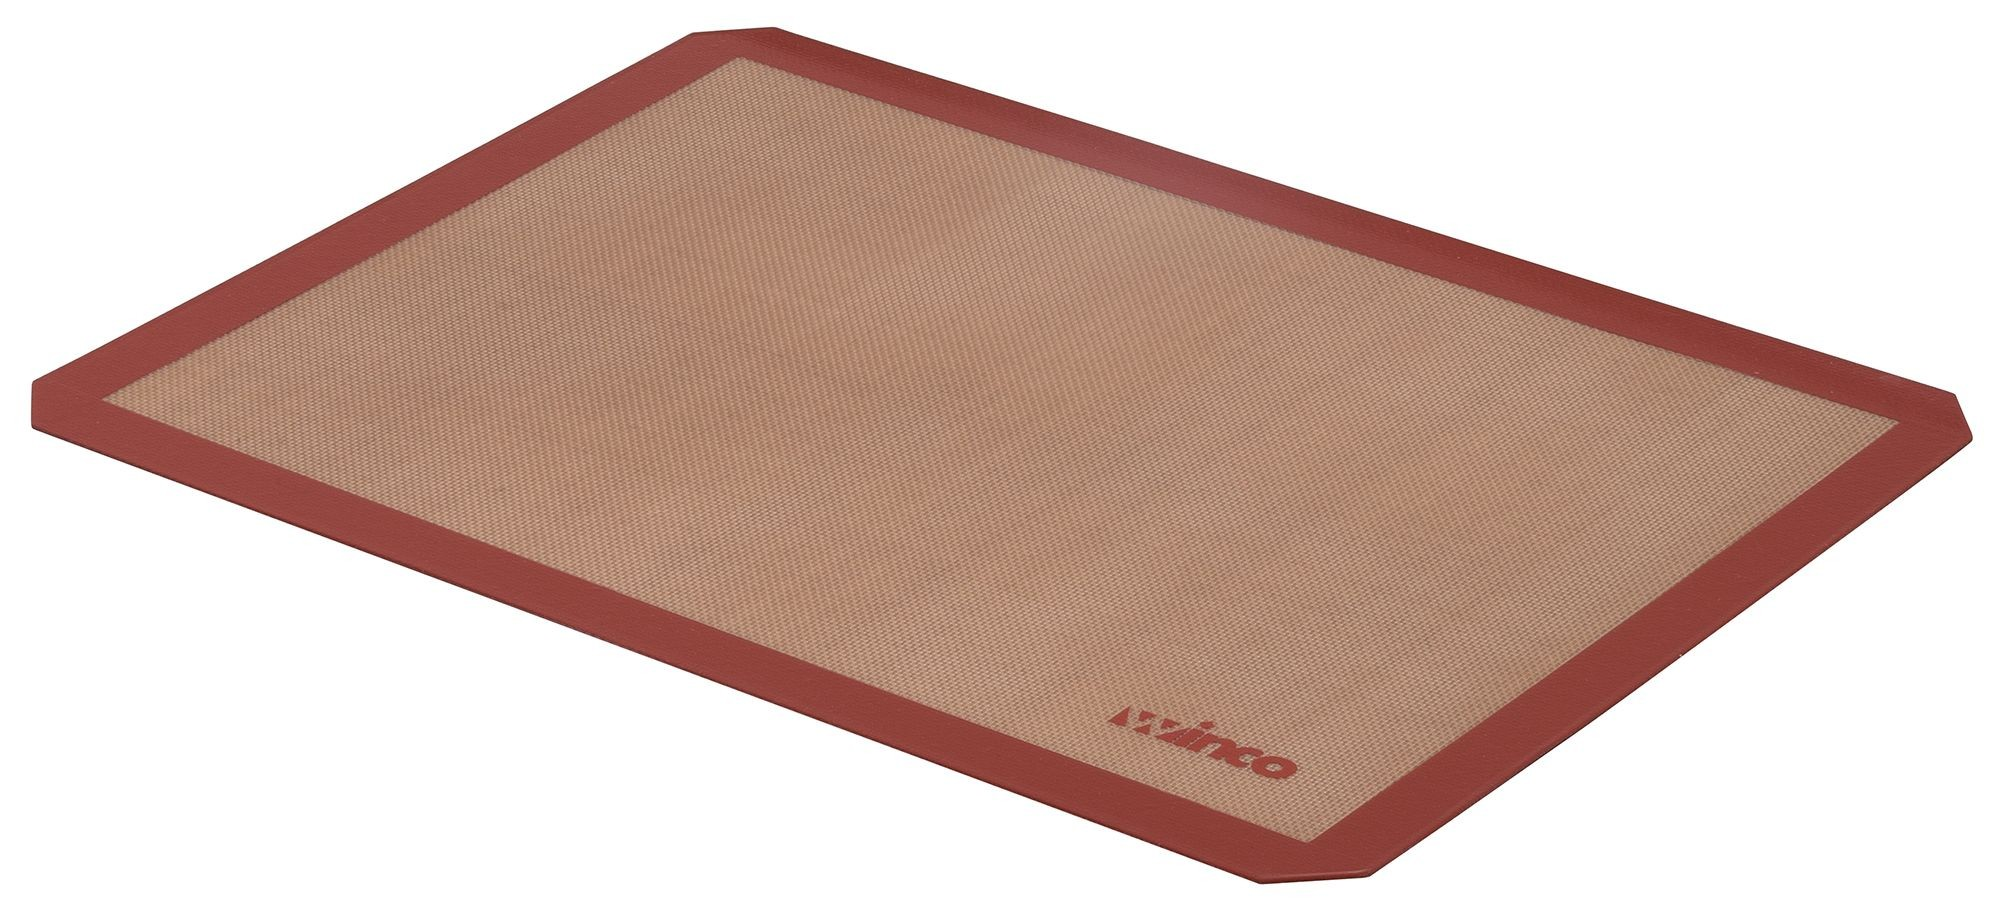 Silicone Baking Mats Fits 2/3-Size Sheet Pan